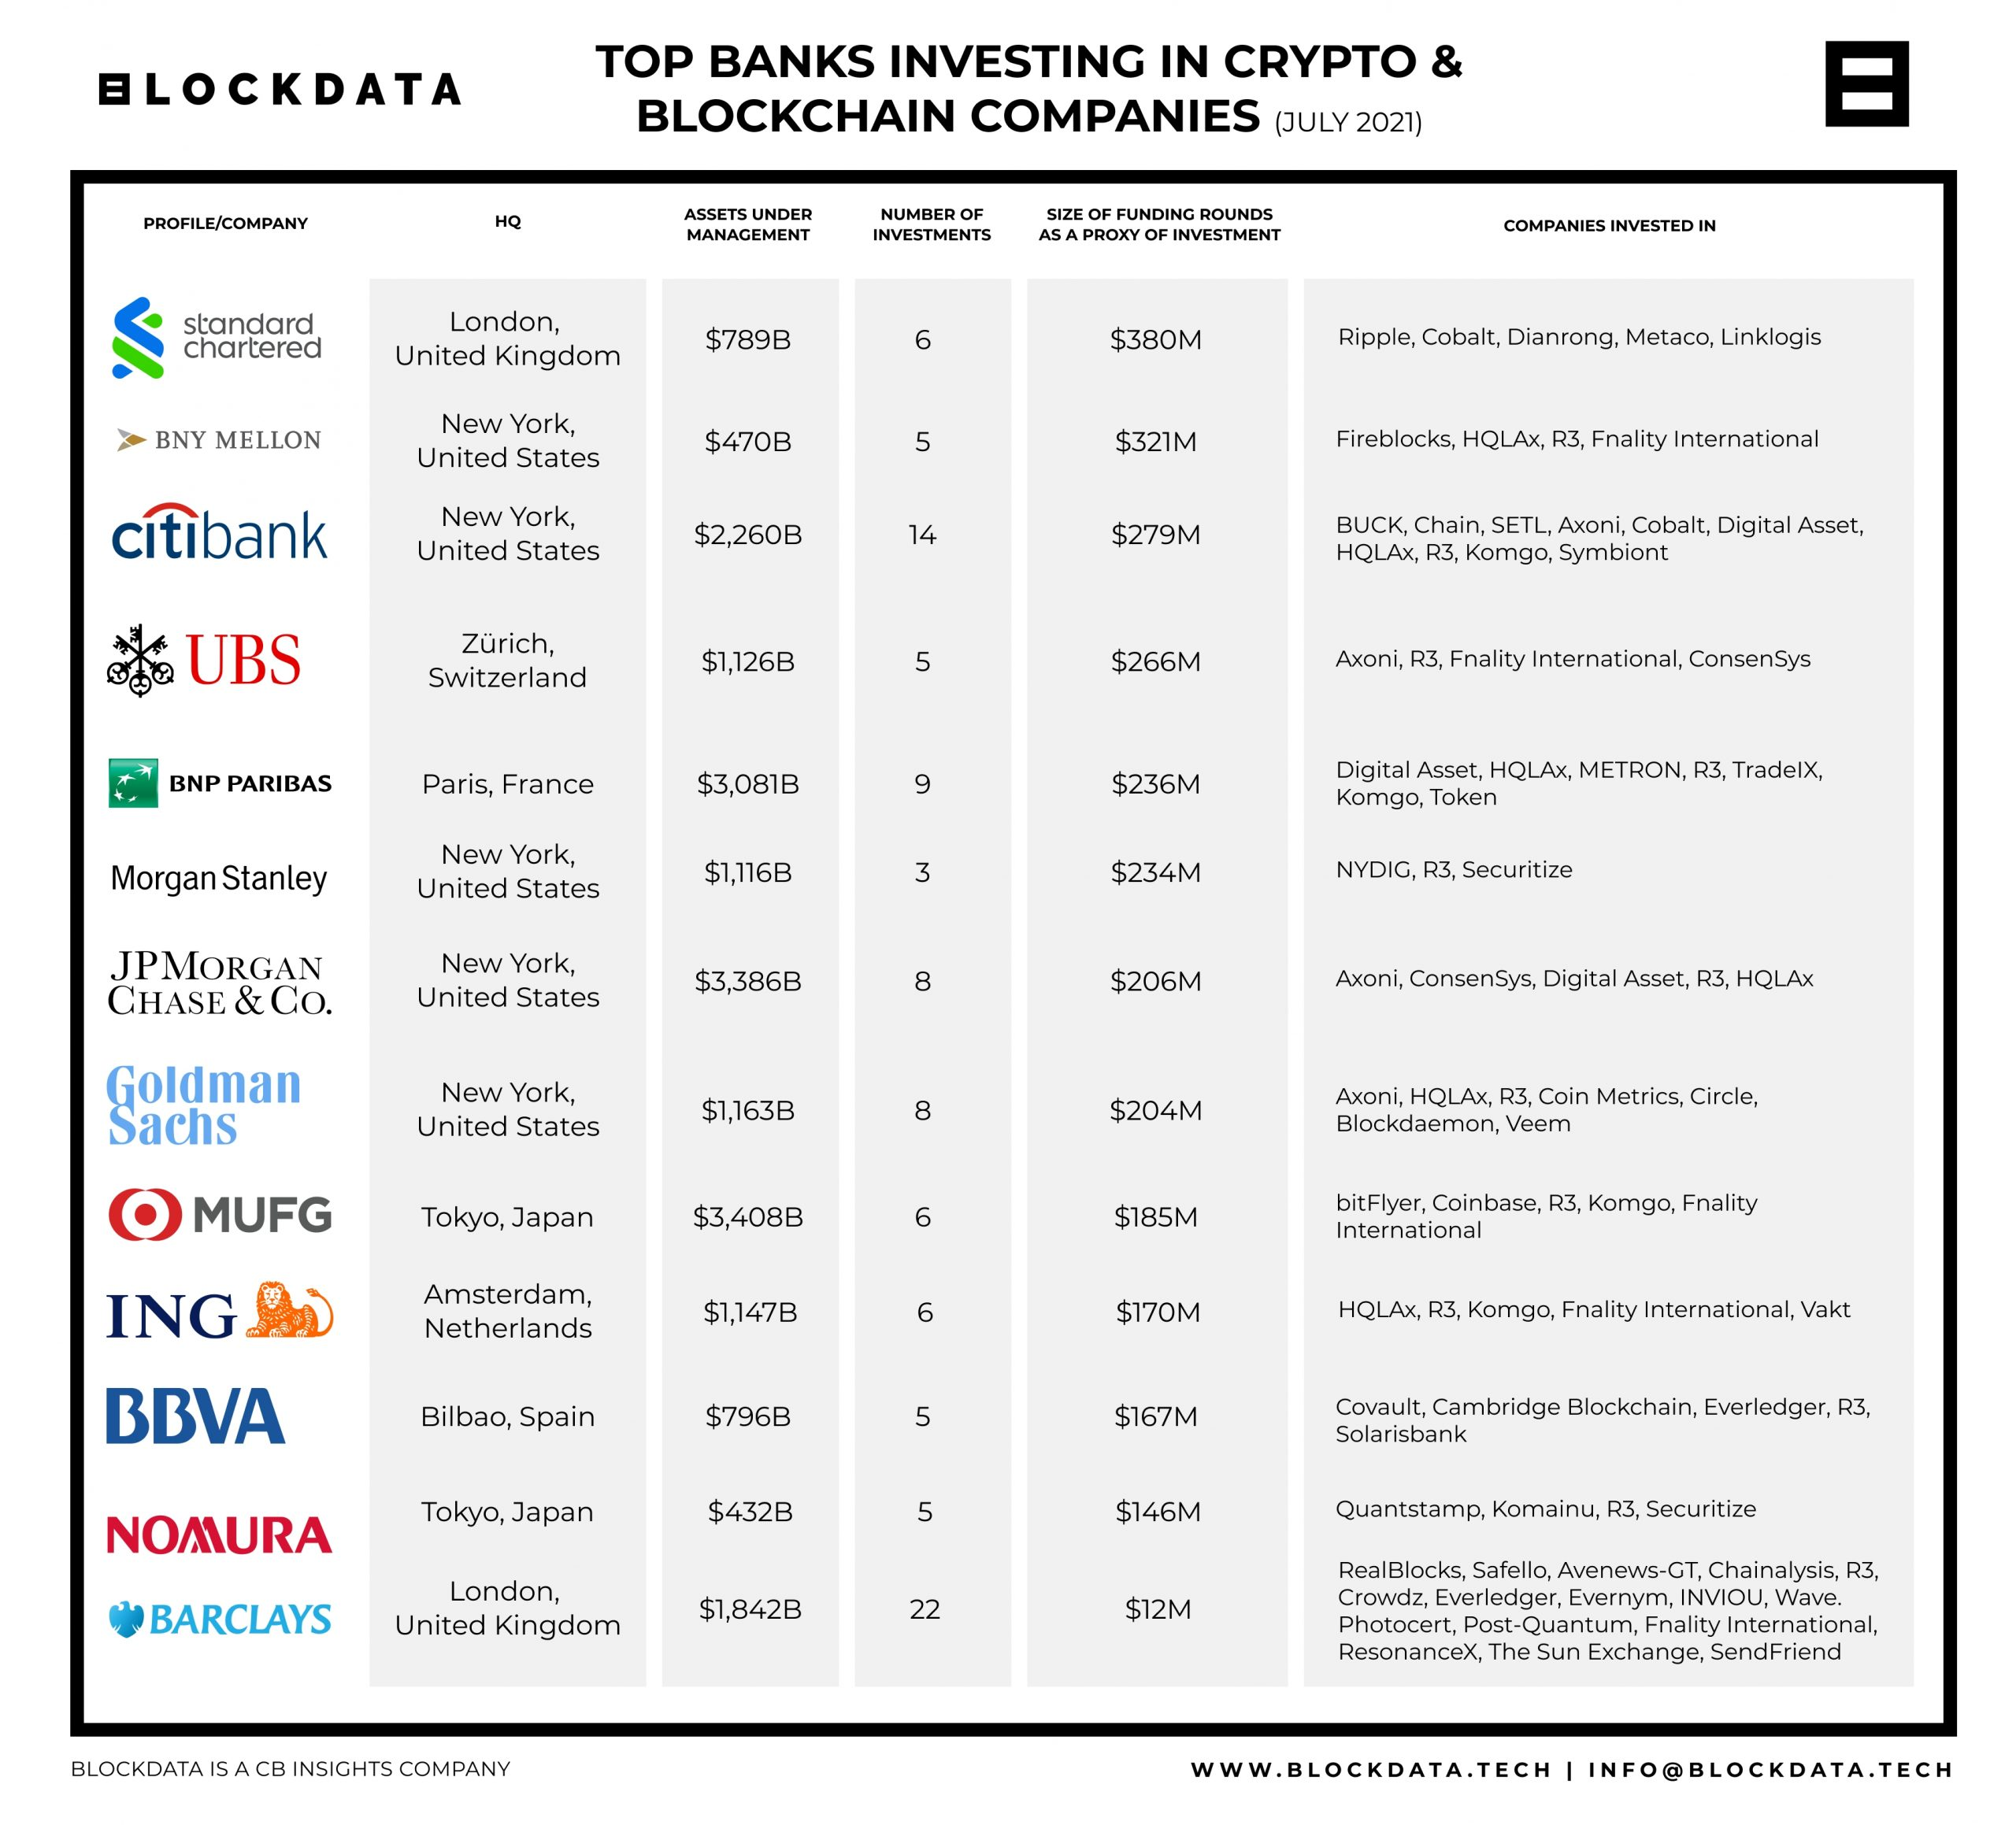 top-banks-investing-in-crypto-and-blockchain-companies-as-of-july-2021.